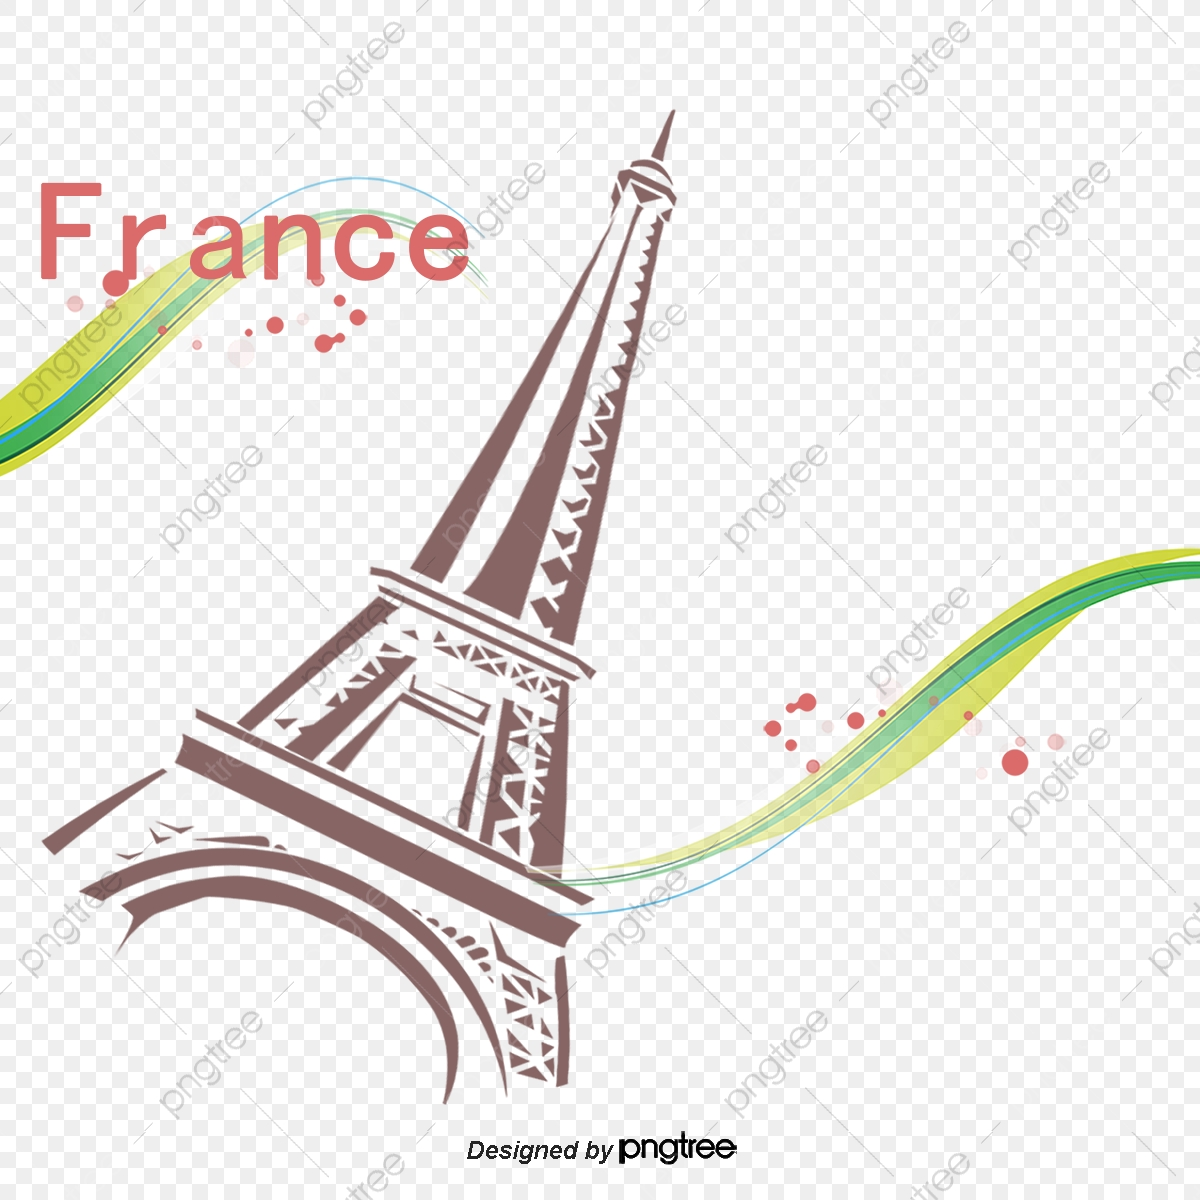 France clipart line. Lines eiffel tower png